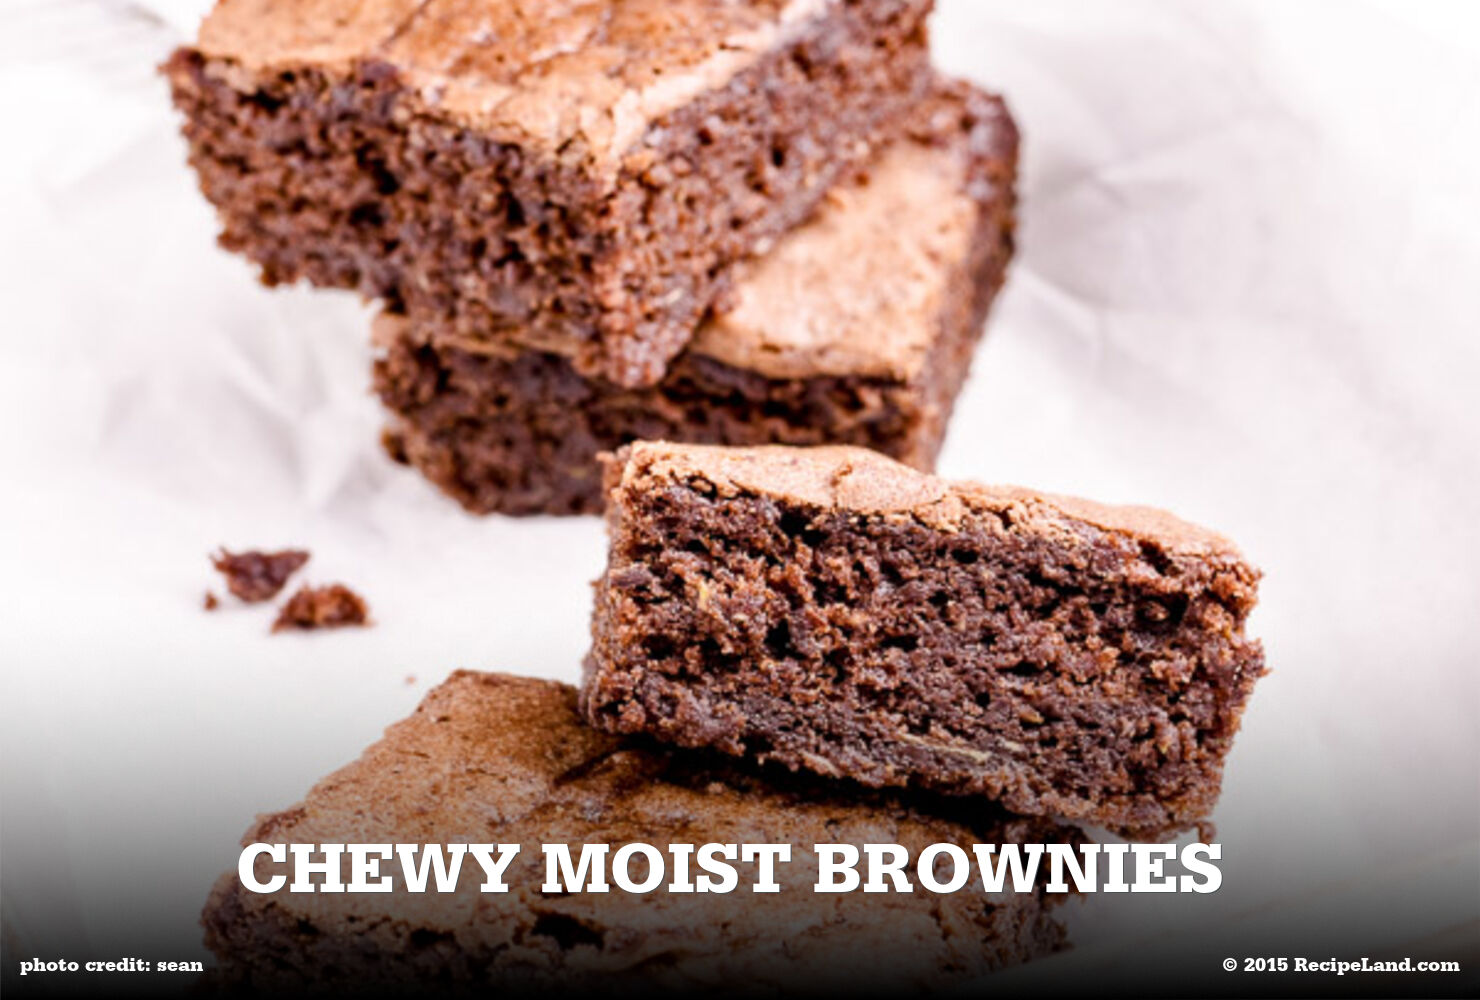 Chewy Moist Brownies